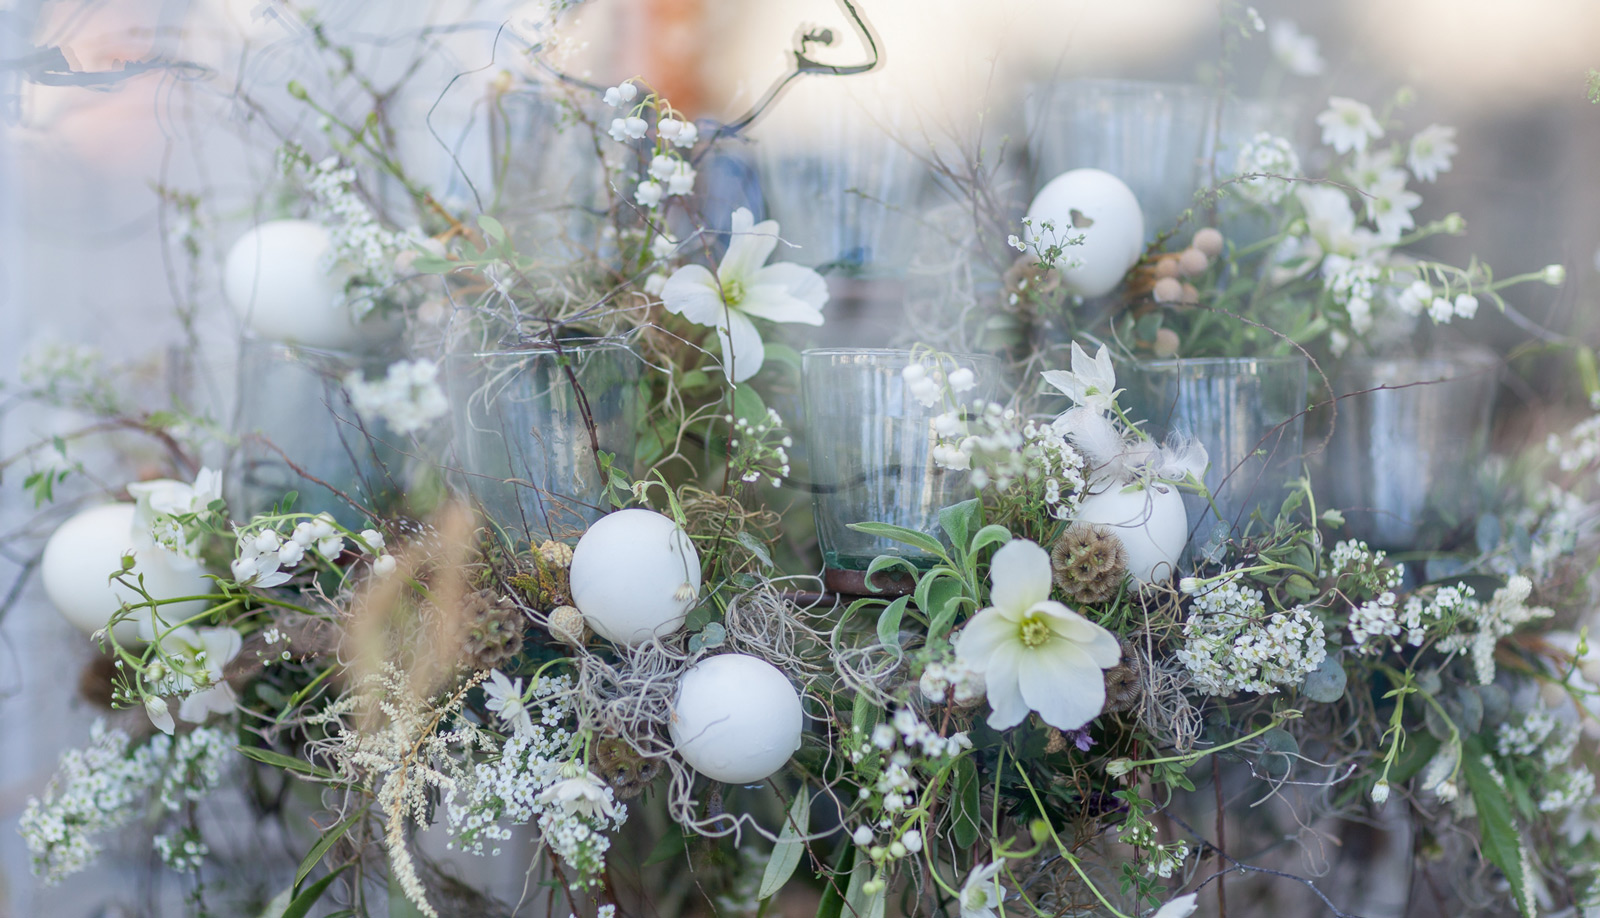 A window display with a simple touch and pure white eggs placed between flowers. A gentle touch of Easter.